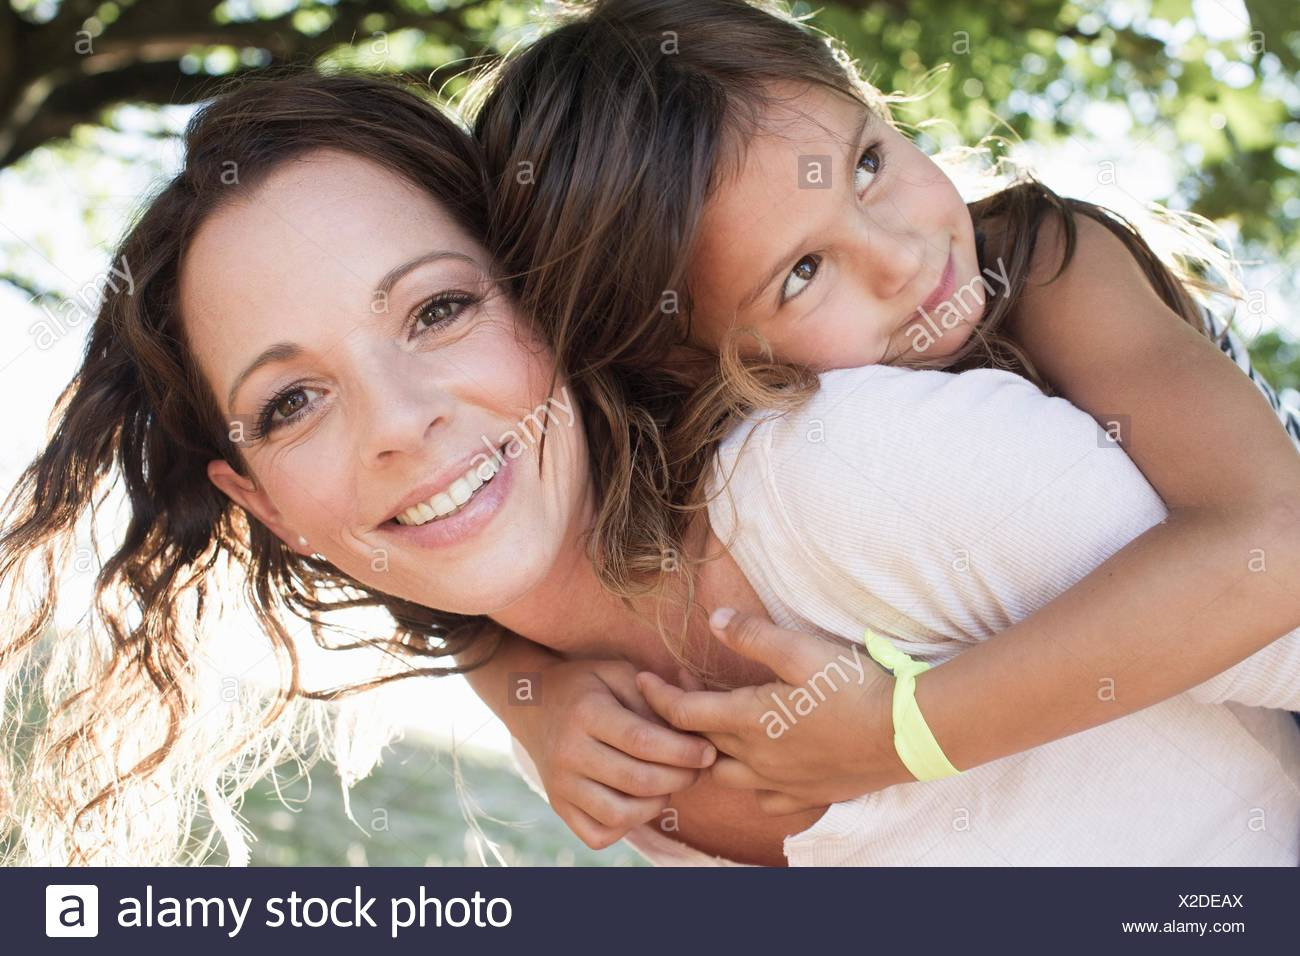 Portrait of mature woman giving daughter piggy back in park - Stock Image